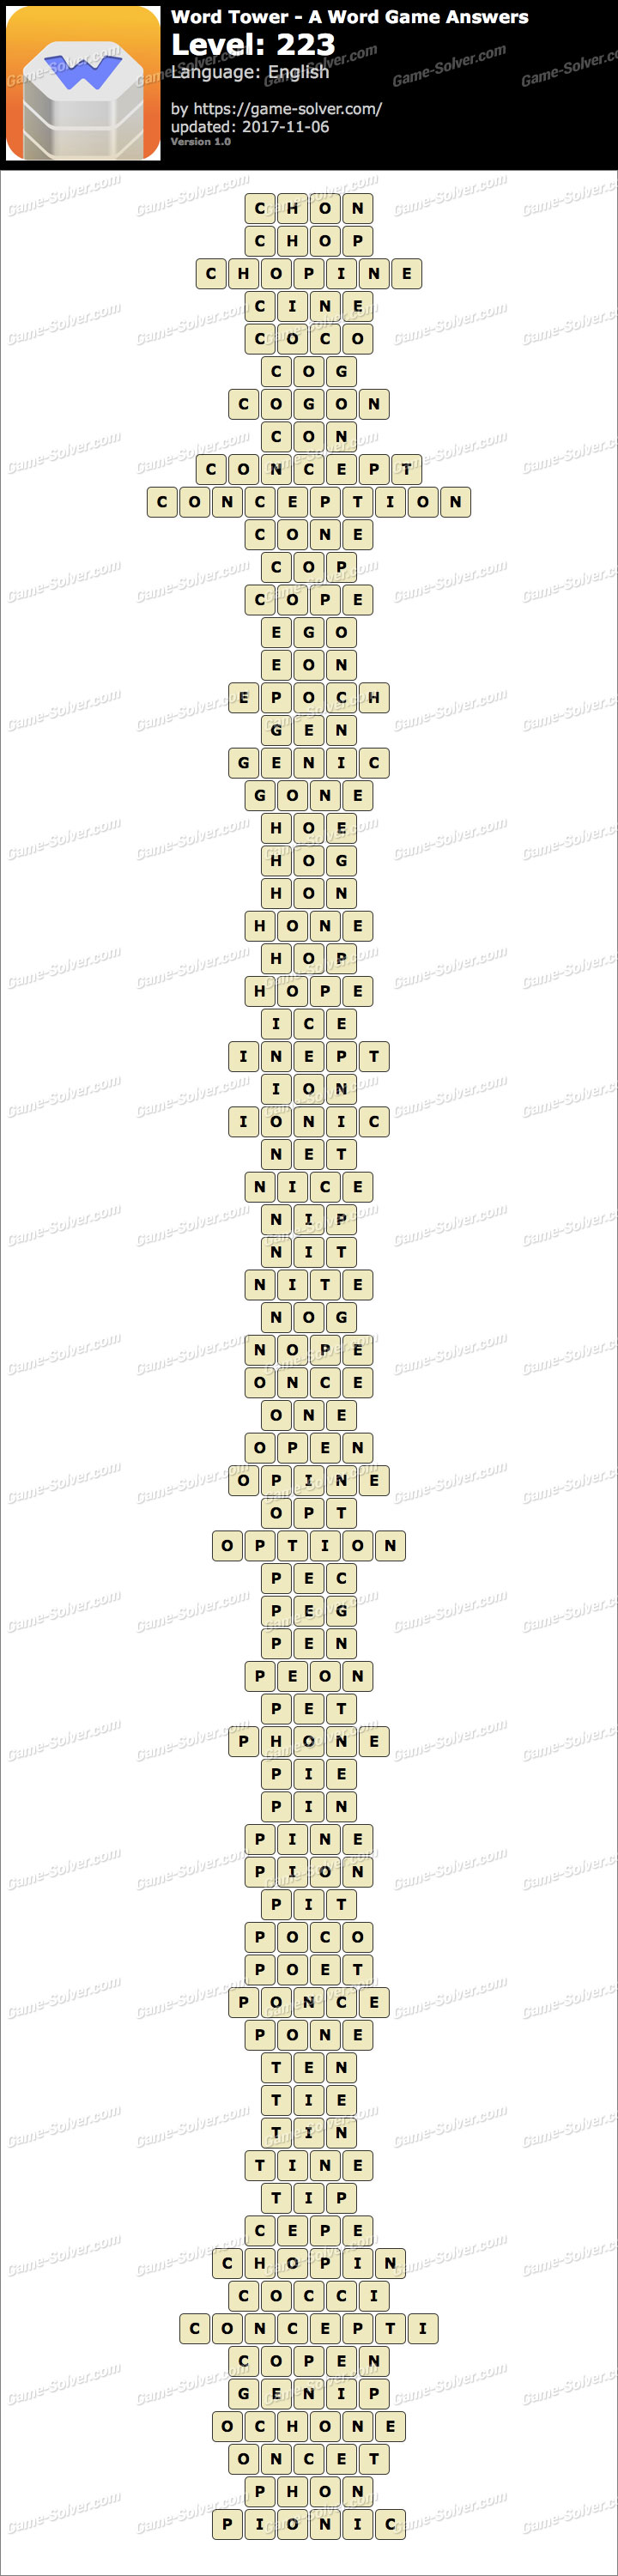 Word Tower Level 223 Answers